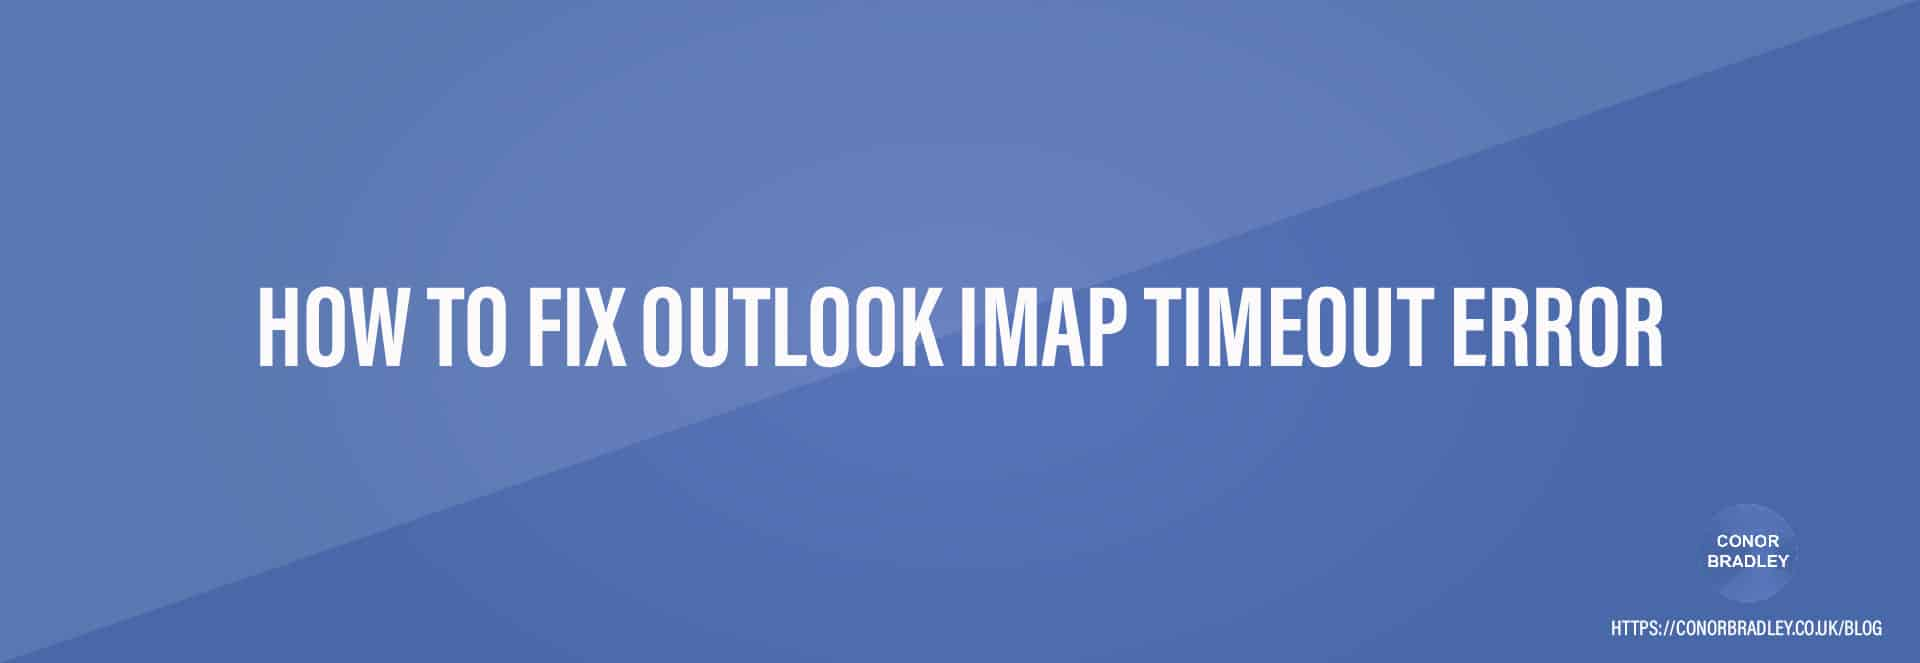 How To Fix Outlook IMAP Timeout Error